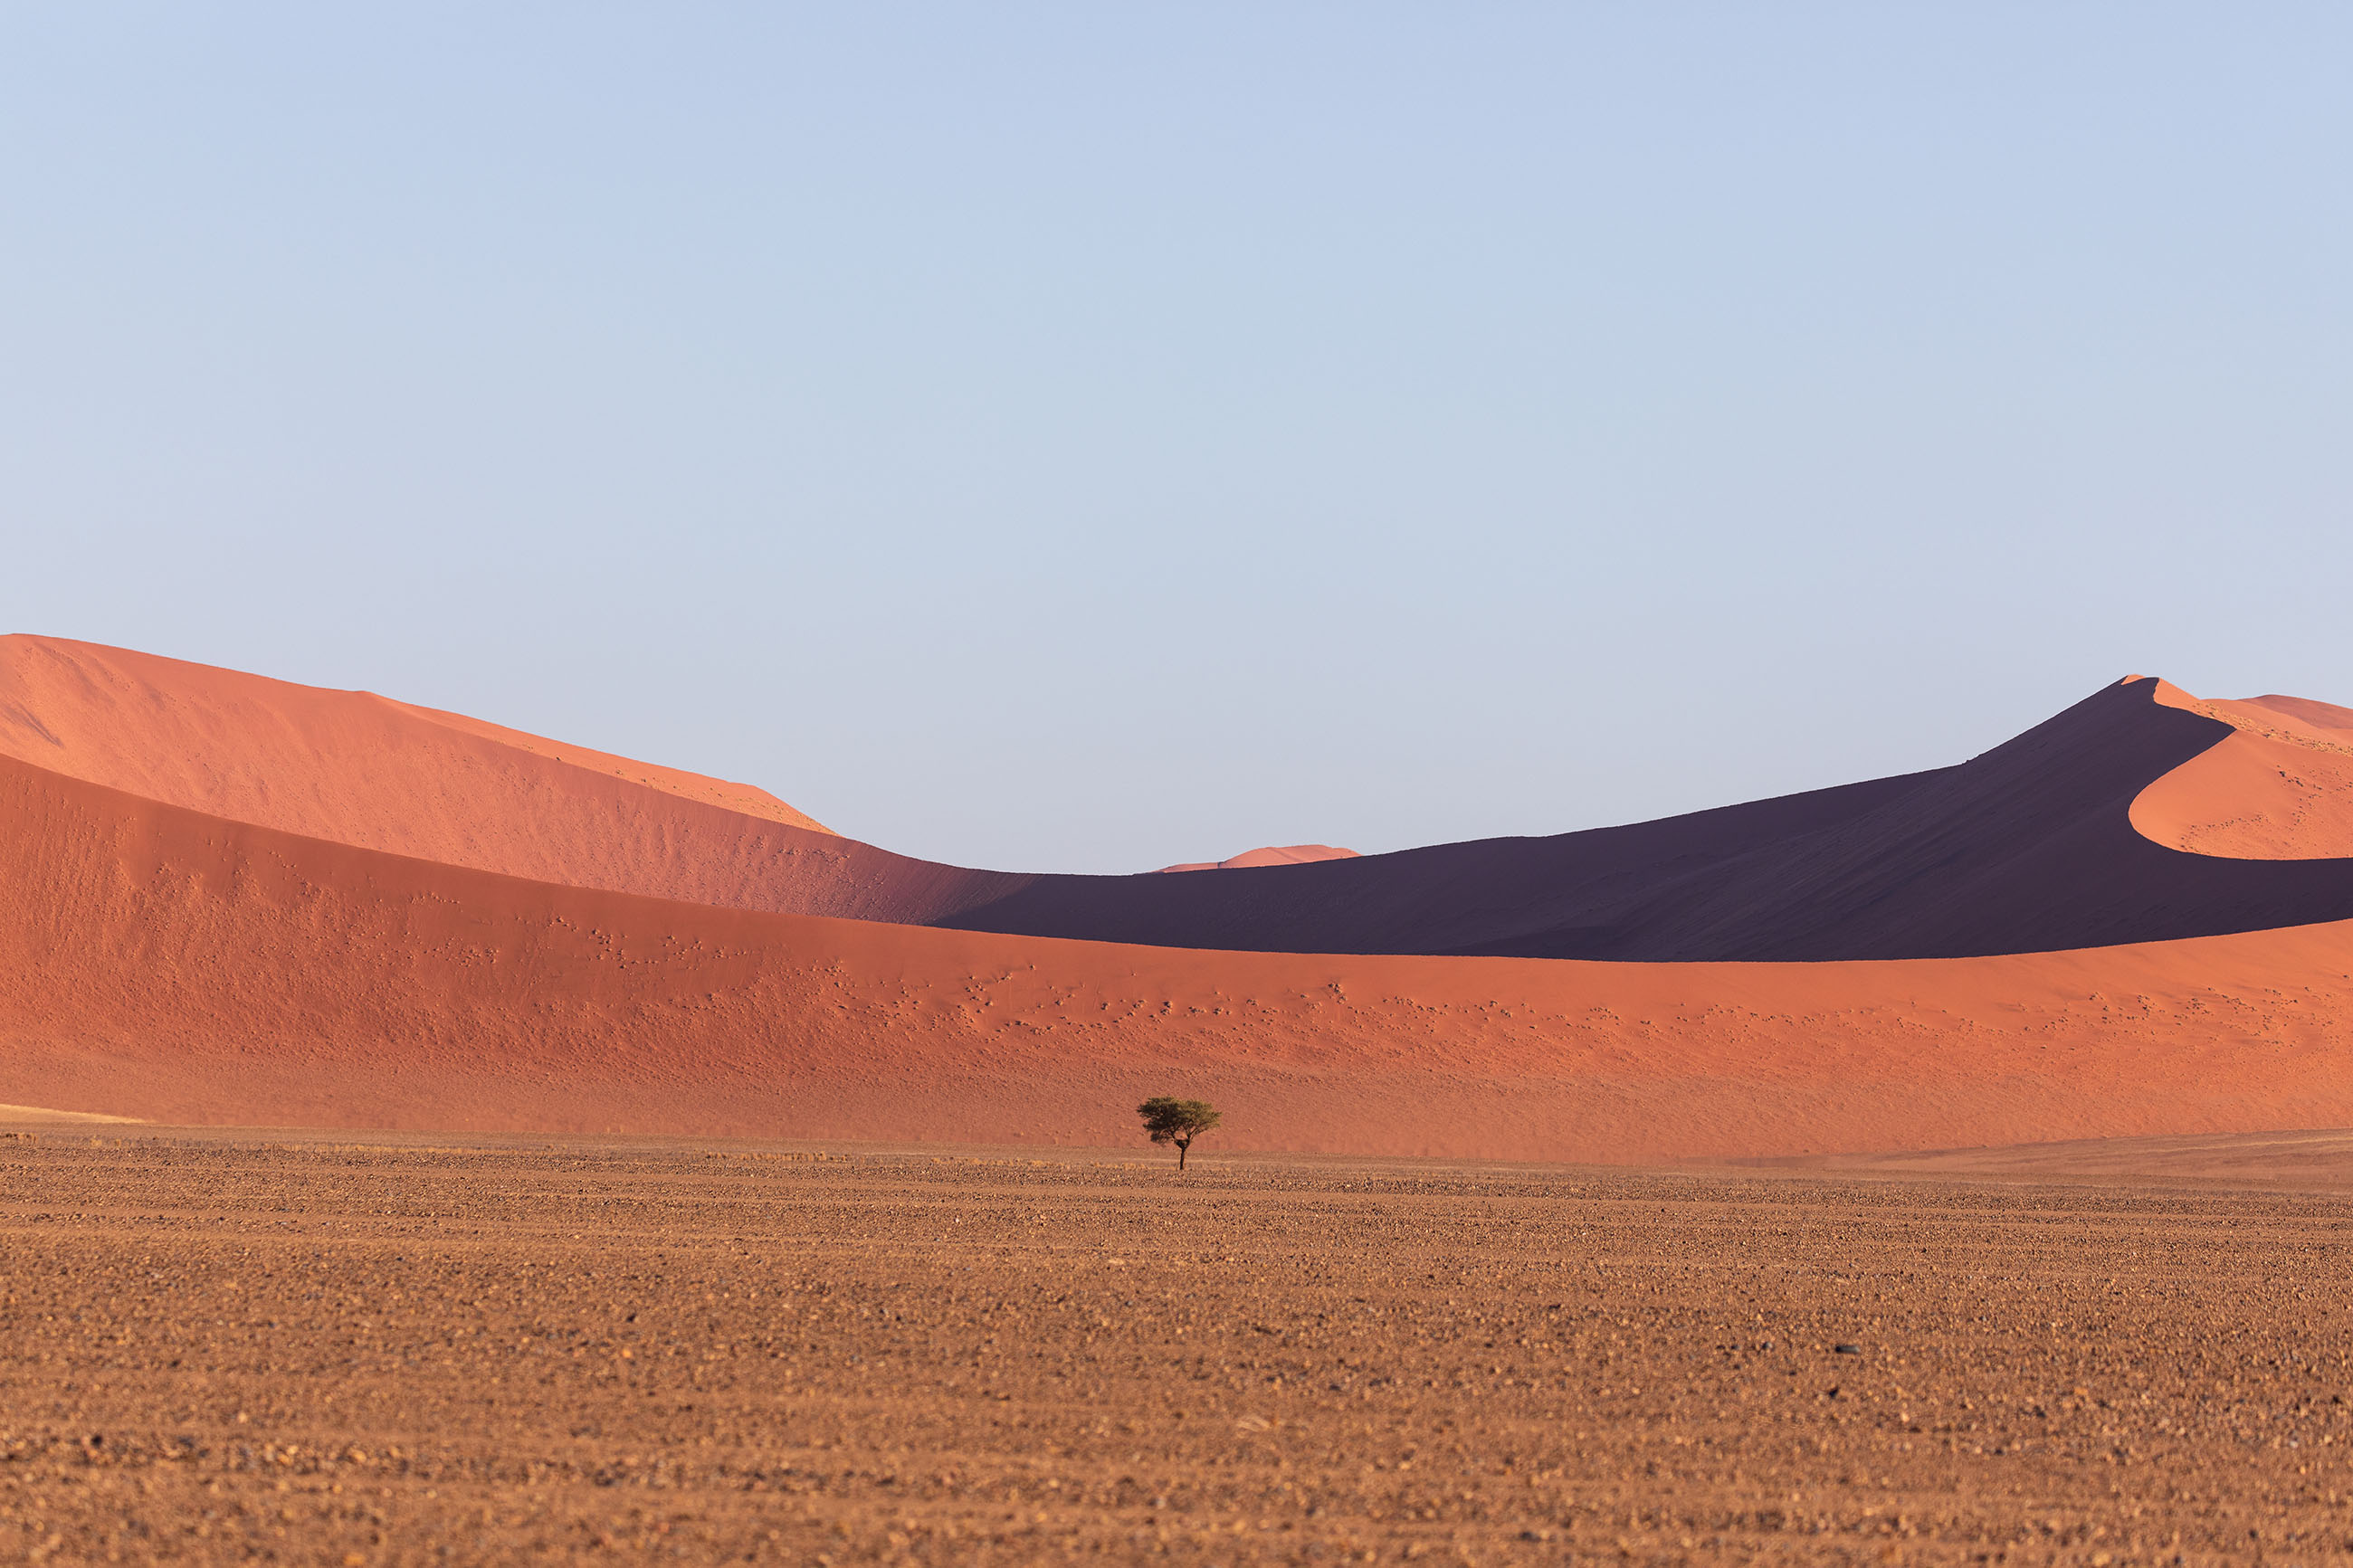 Tree in Namib Desert - The Moving Lens